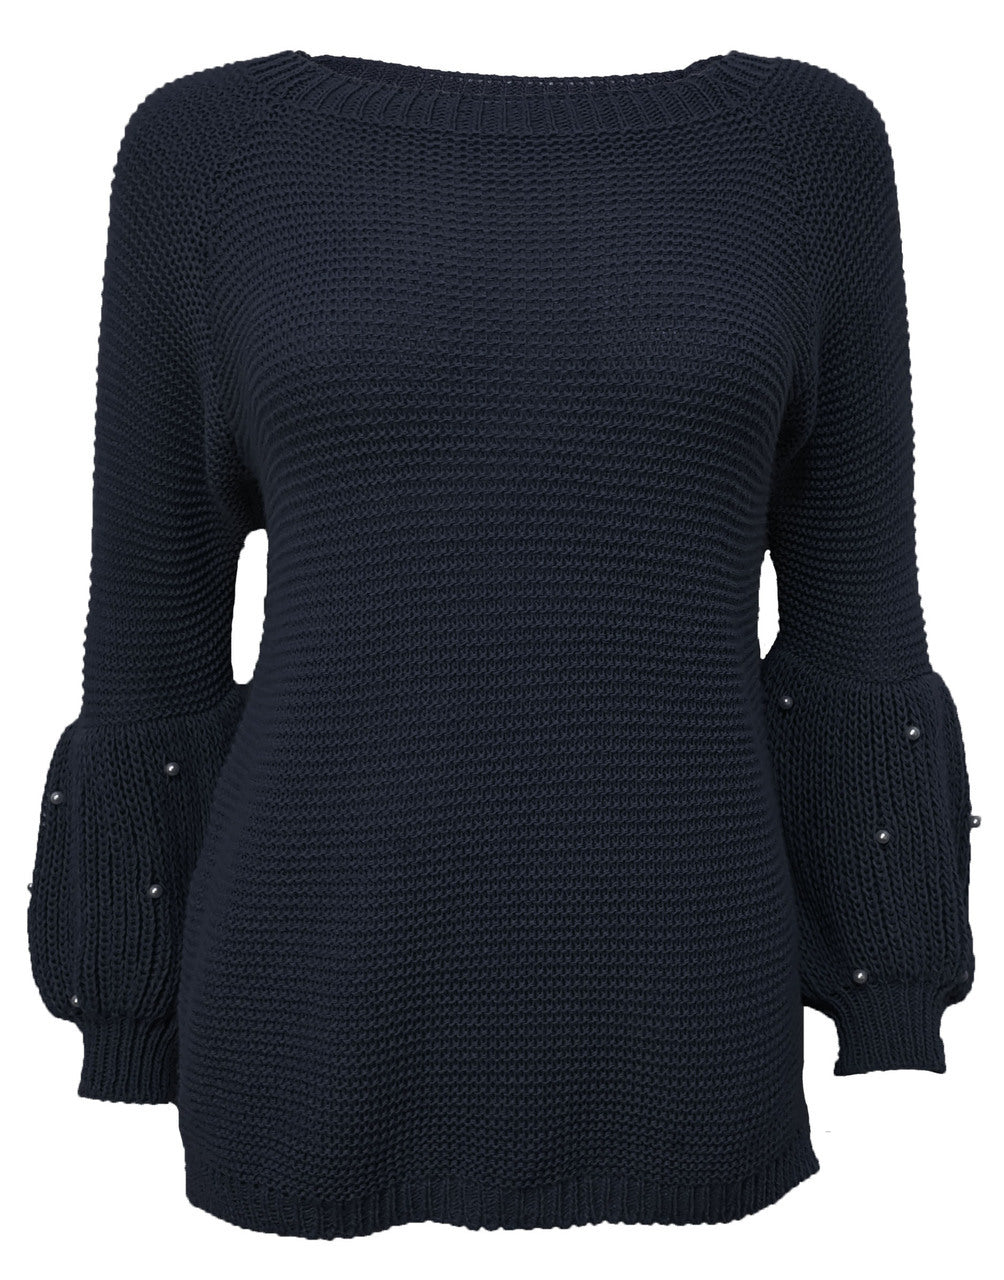 Puff Sleeve Navy Sweater With Pearl Details